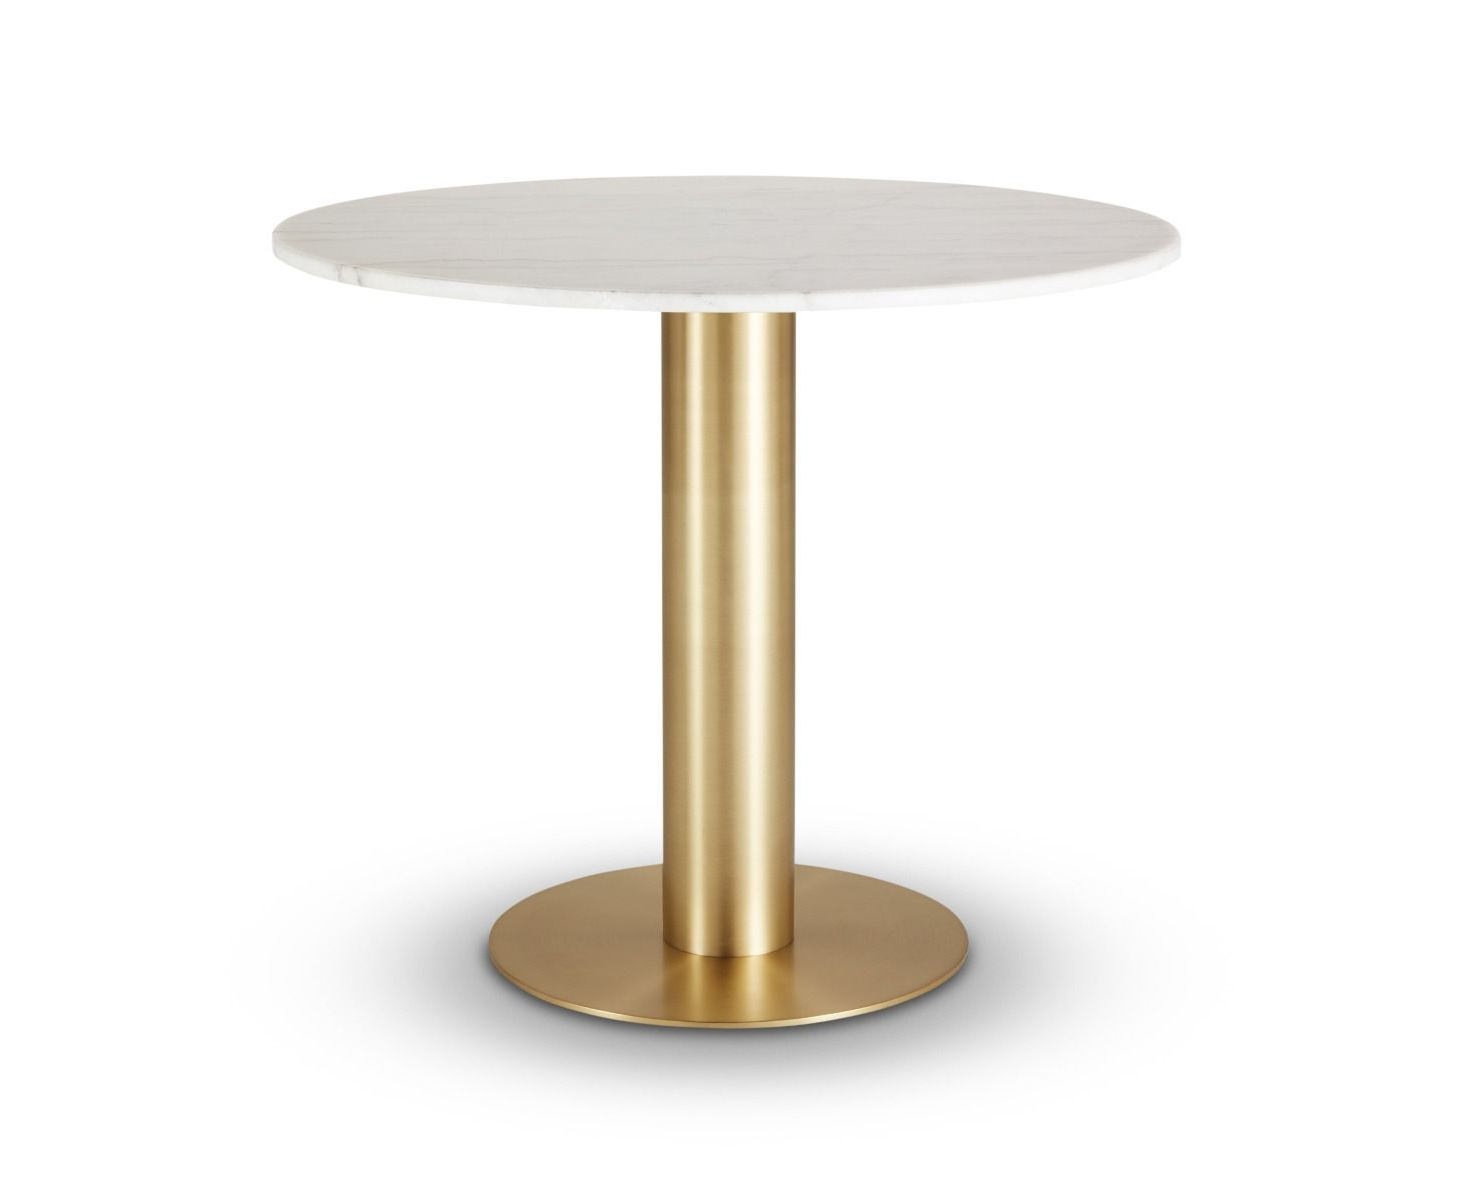 Most Current Tube Dining Table Brass White Marble Top 900mm Within Dining Tables With White Marble Top (Gallery 12 of 30)